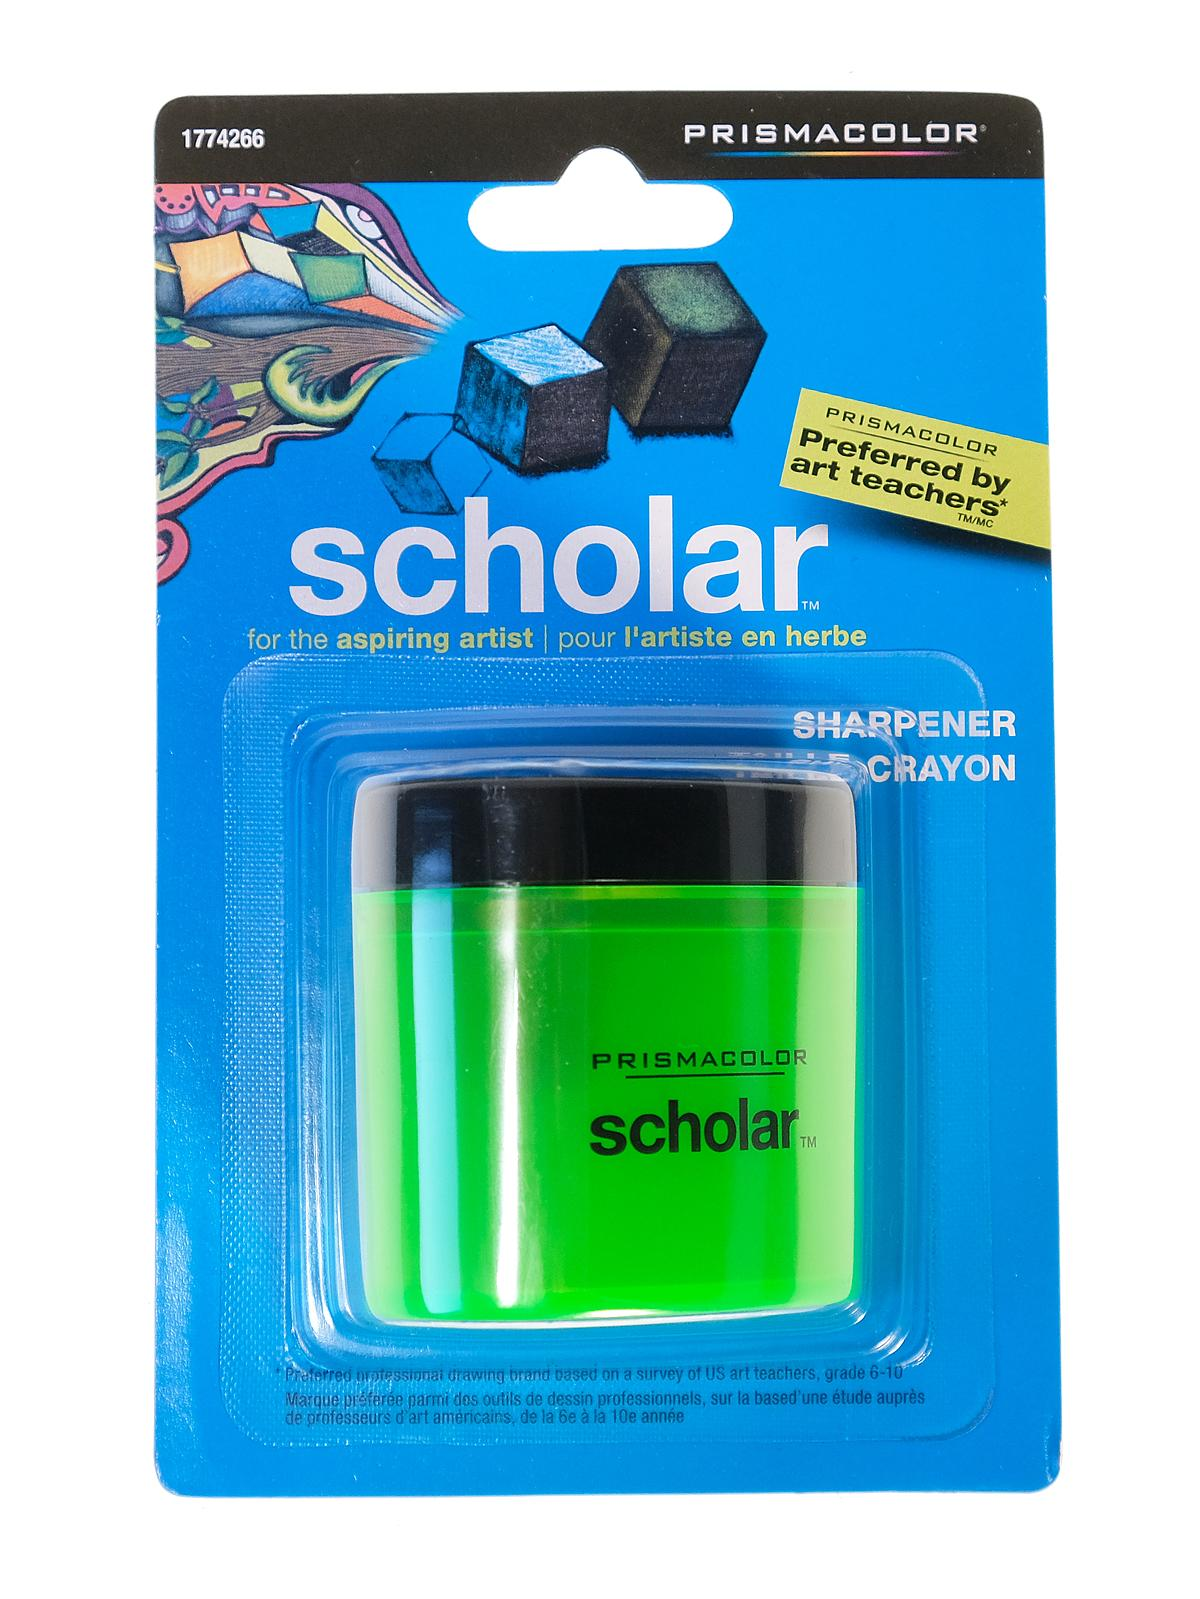 prismacolor sharpener how to open